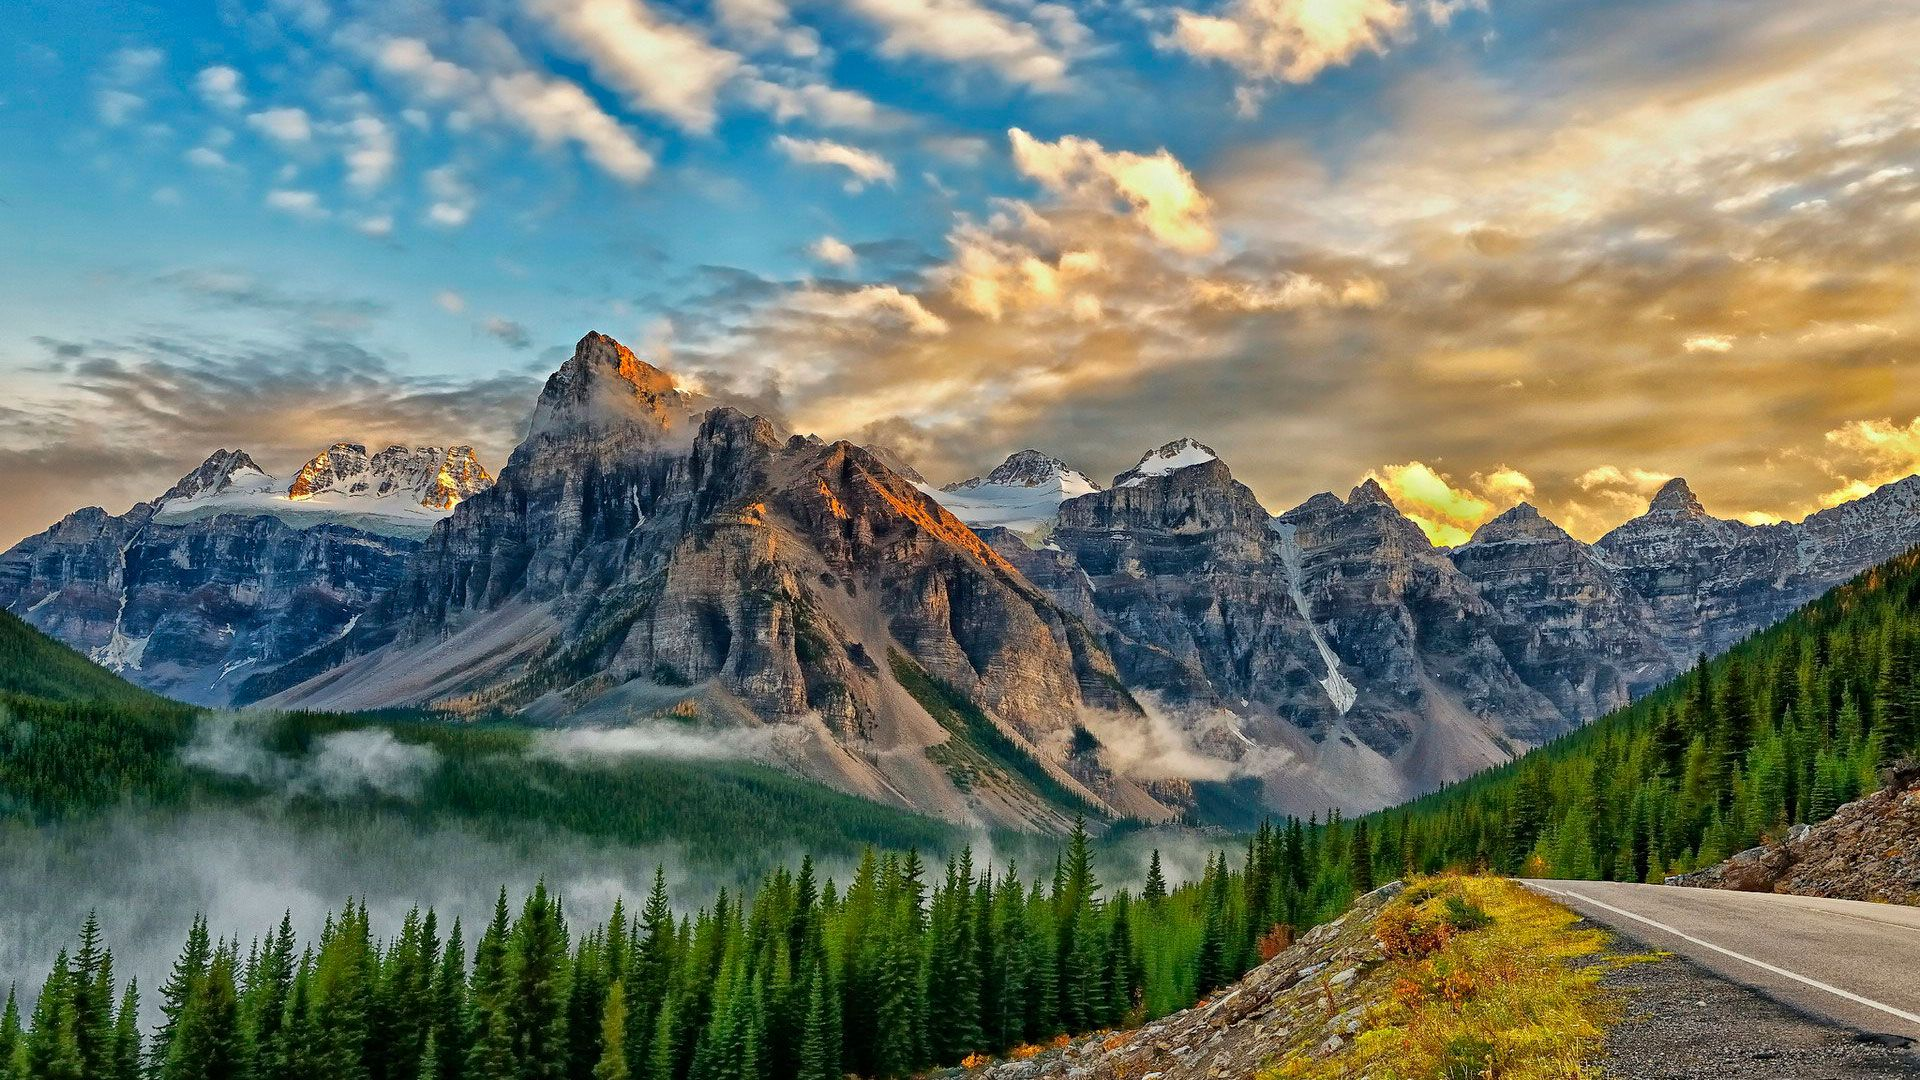 Beautiful Hd Scenery Wallpapers download for Mobile | Cool Places in 2019 | Banff national park ...